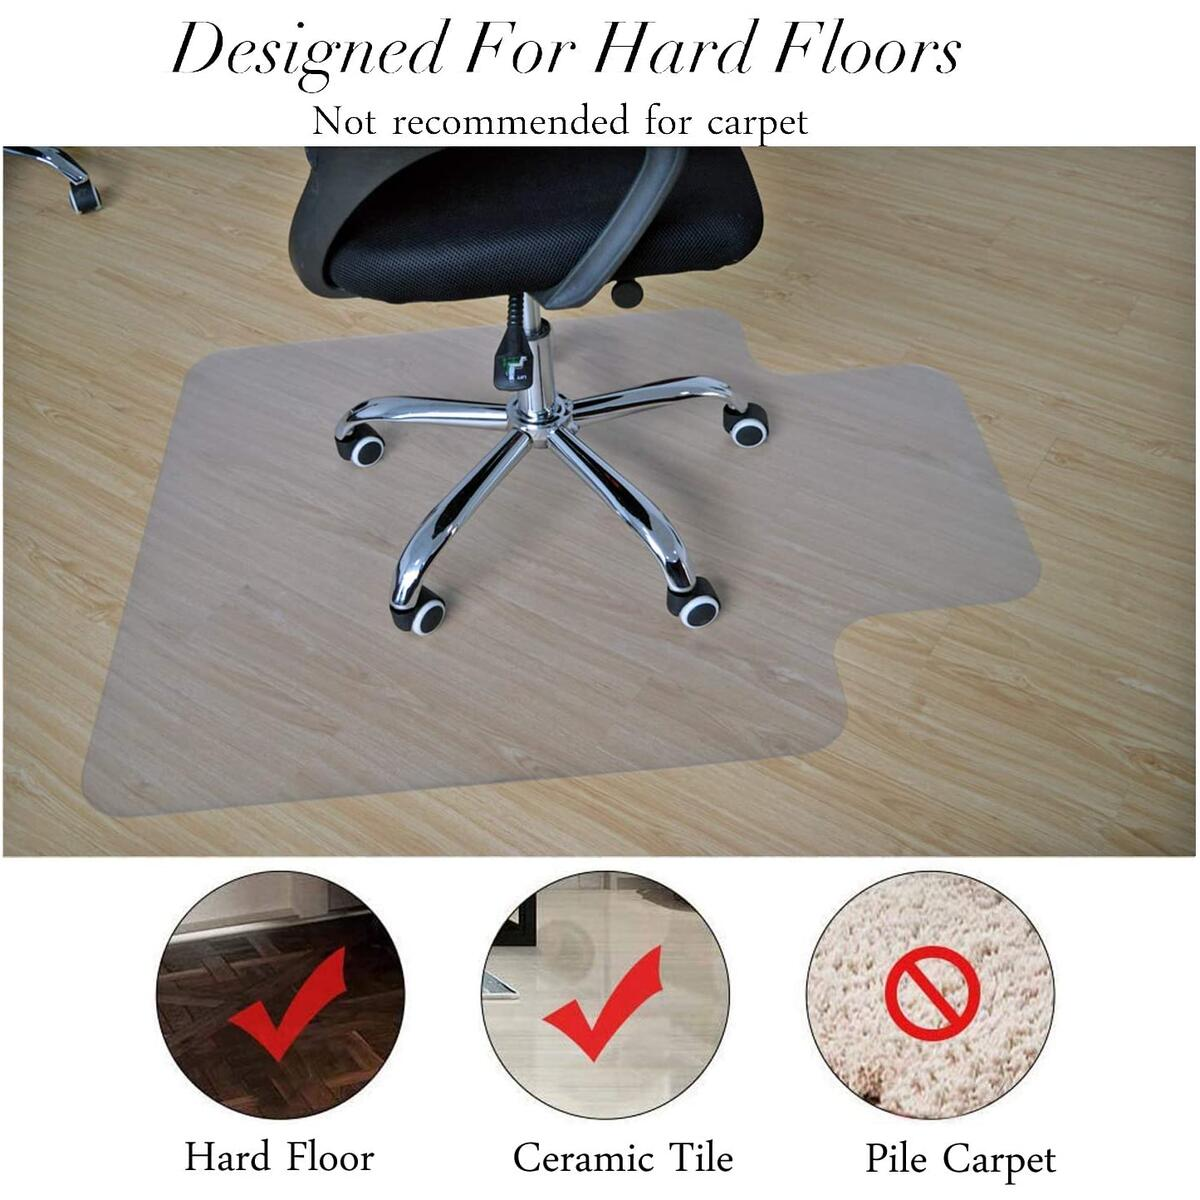 BigTron Office Desk Chair Mat for Hardwood Floors- PVC Matte, Transparent Durable Hardwood Floor Protector, Chair Mat is Immediately Flat Out of Box, 36x48 with Lip(Clear)